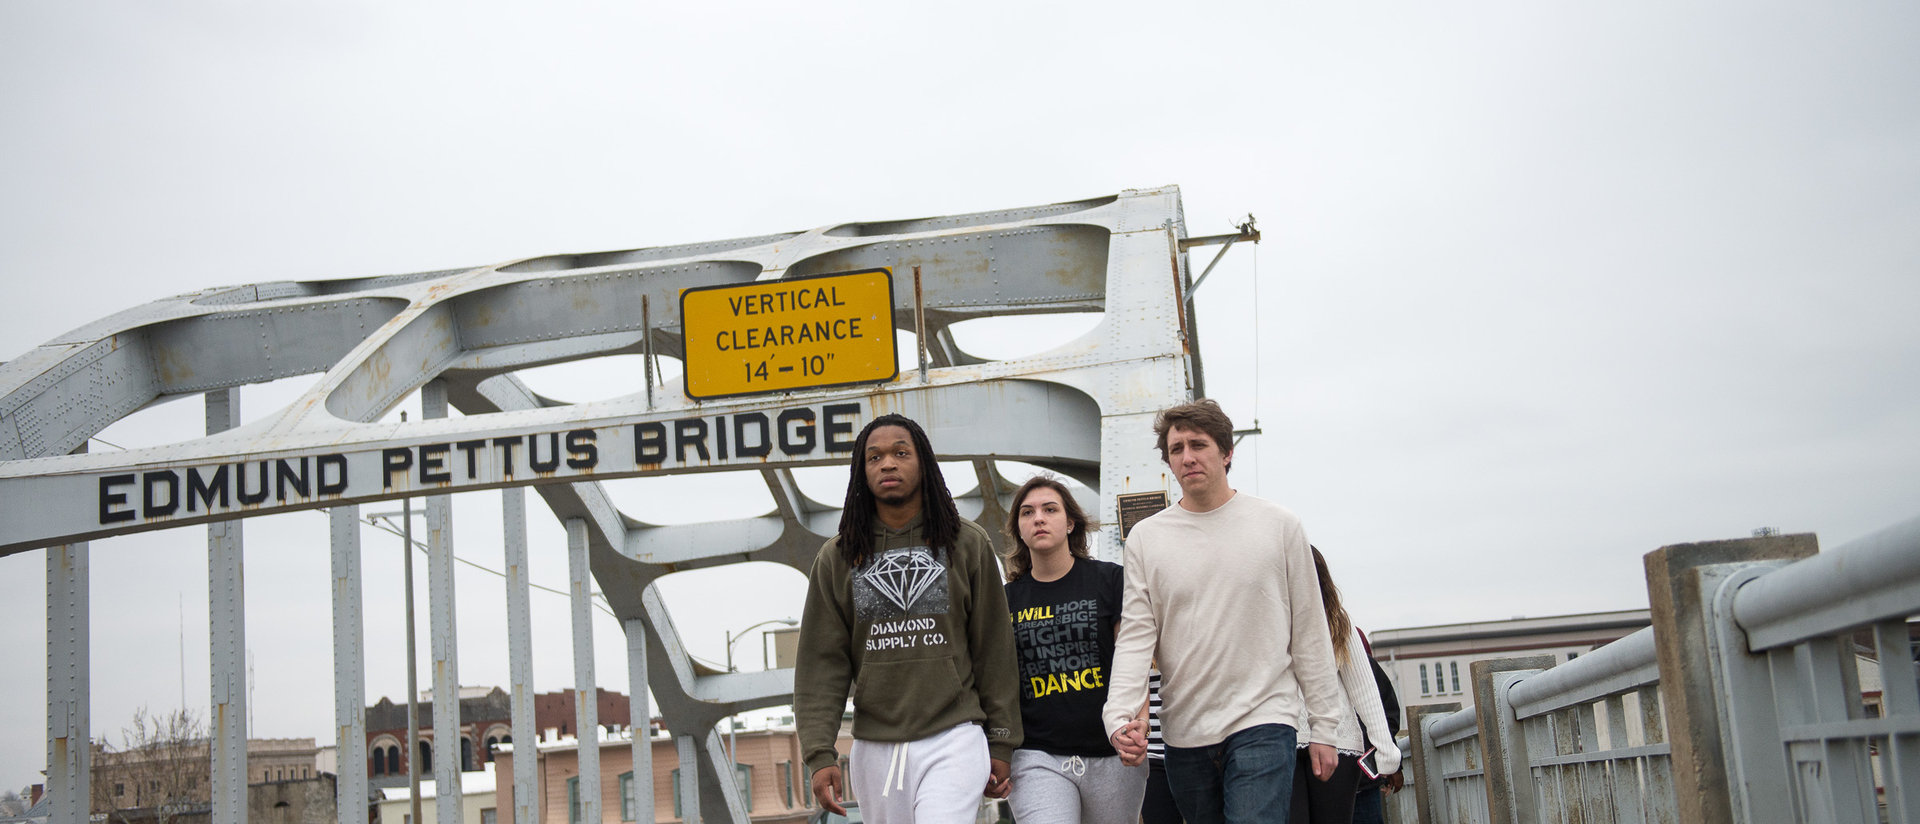 Blugold students walking across the Edmund Pettis Bridge in Selma